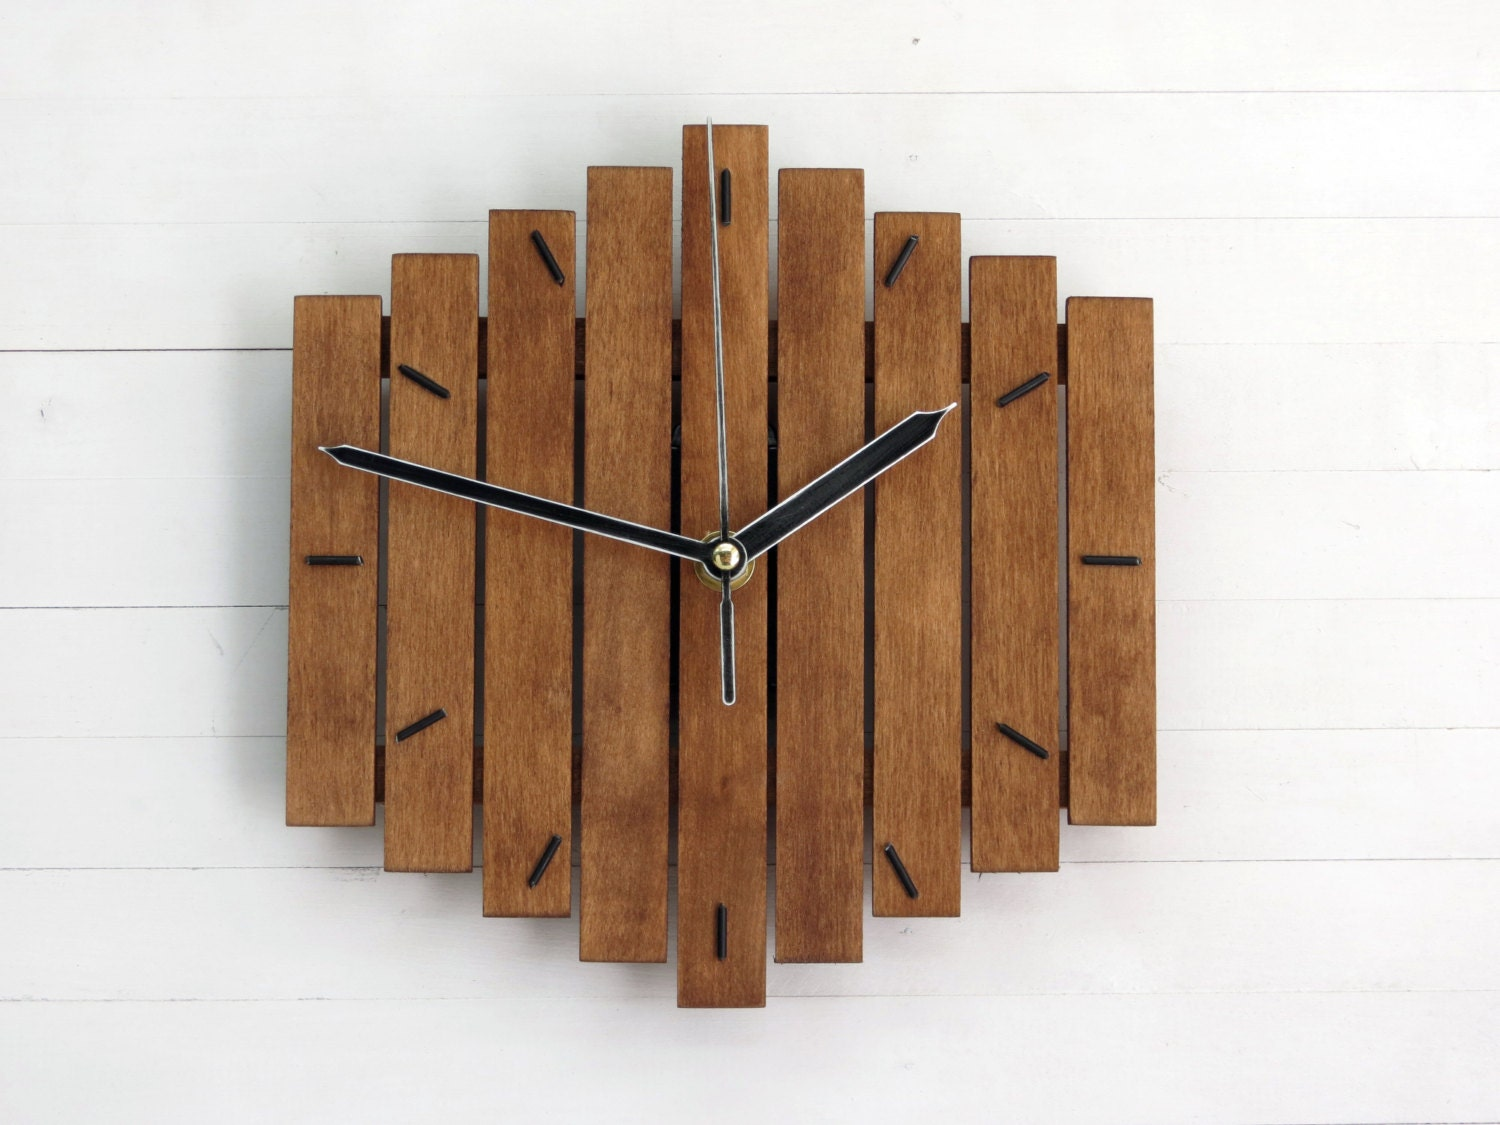 Wood wall clock romb i wooden clock geometric clock by paladim - Wooden wall design ...